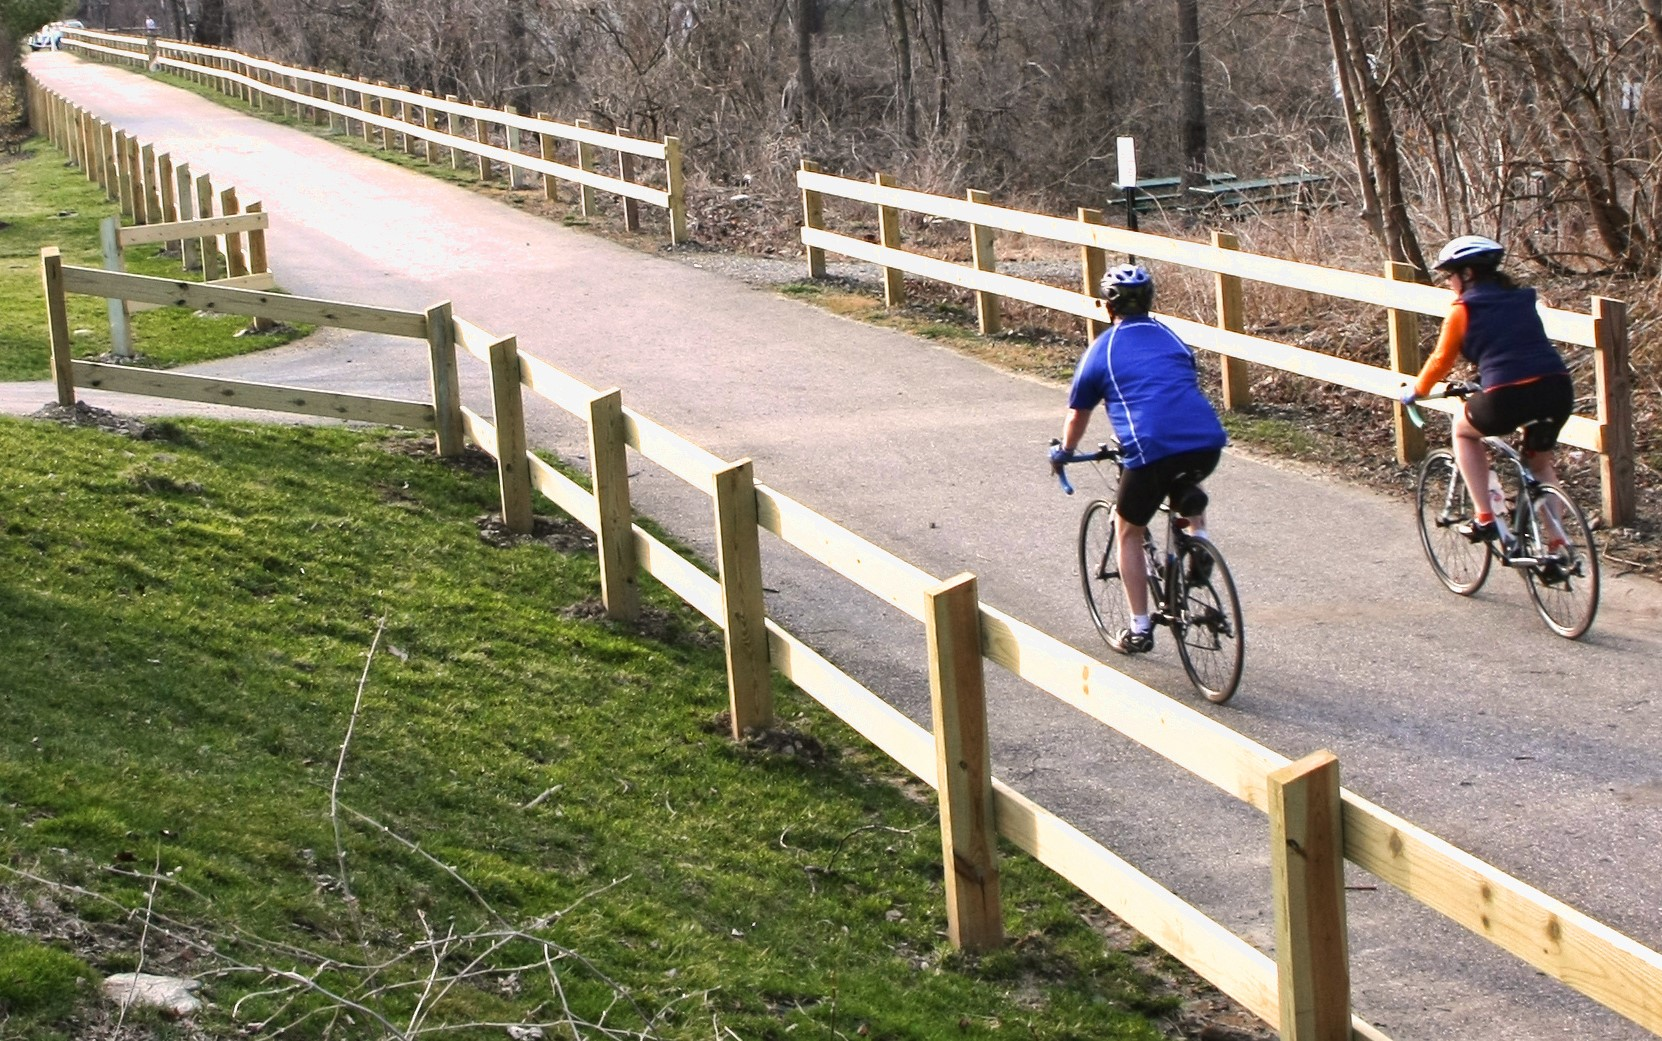 Take Planning Commission's Survey on Chester Valley Trail's Western Extension